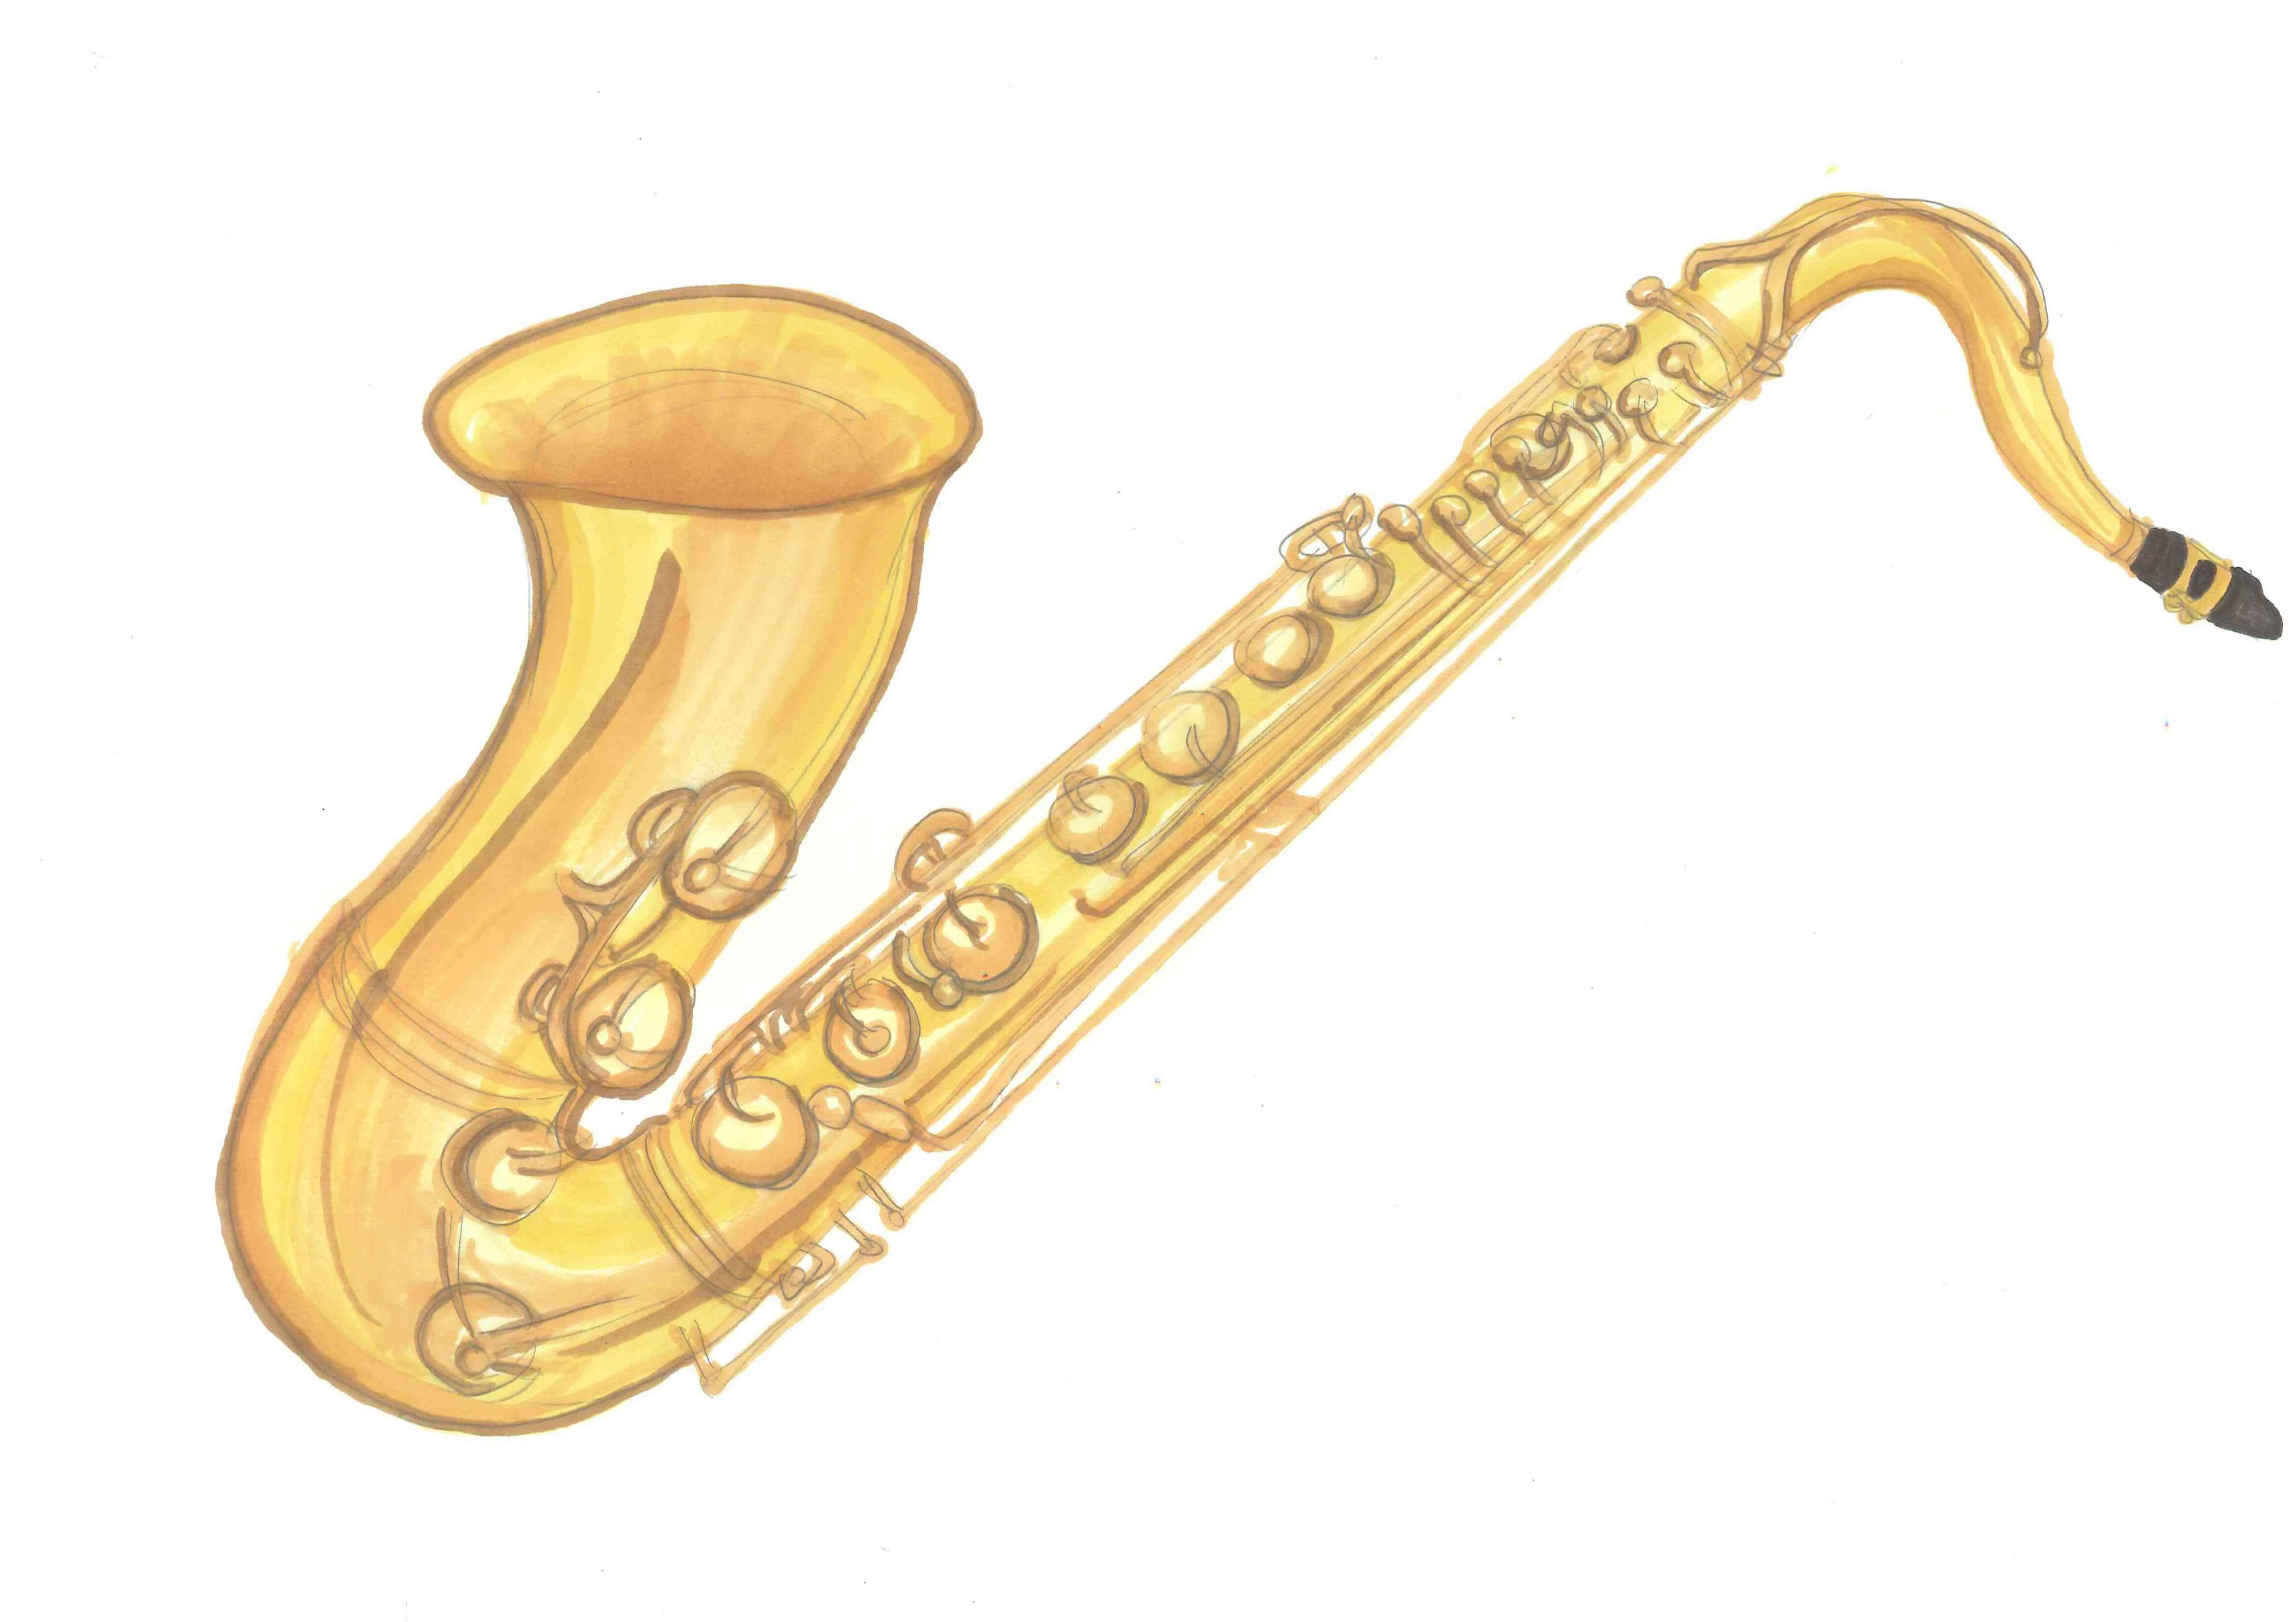 band instrument clipart - photo #32